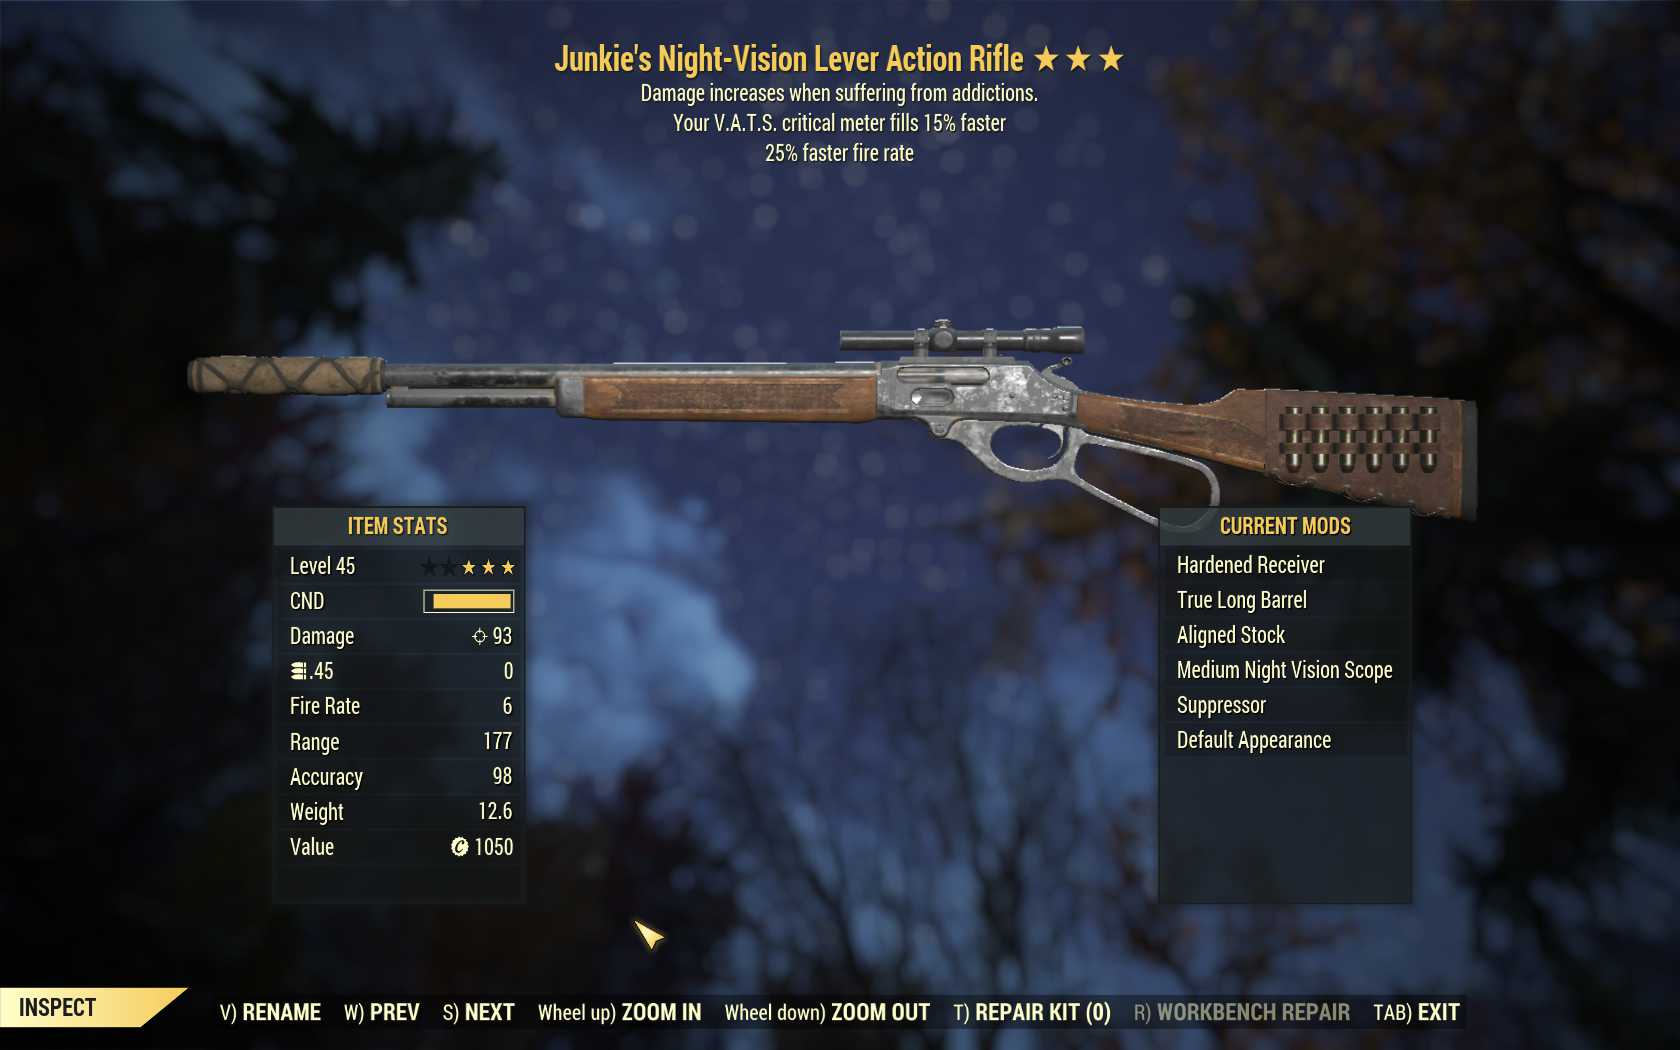 Junkie's Lever Action Rifle (25% faster fire rate, VATS crit fills 15% faster)